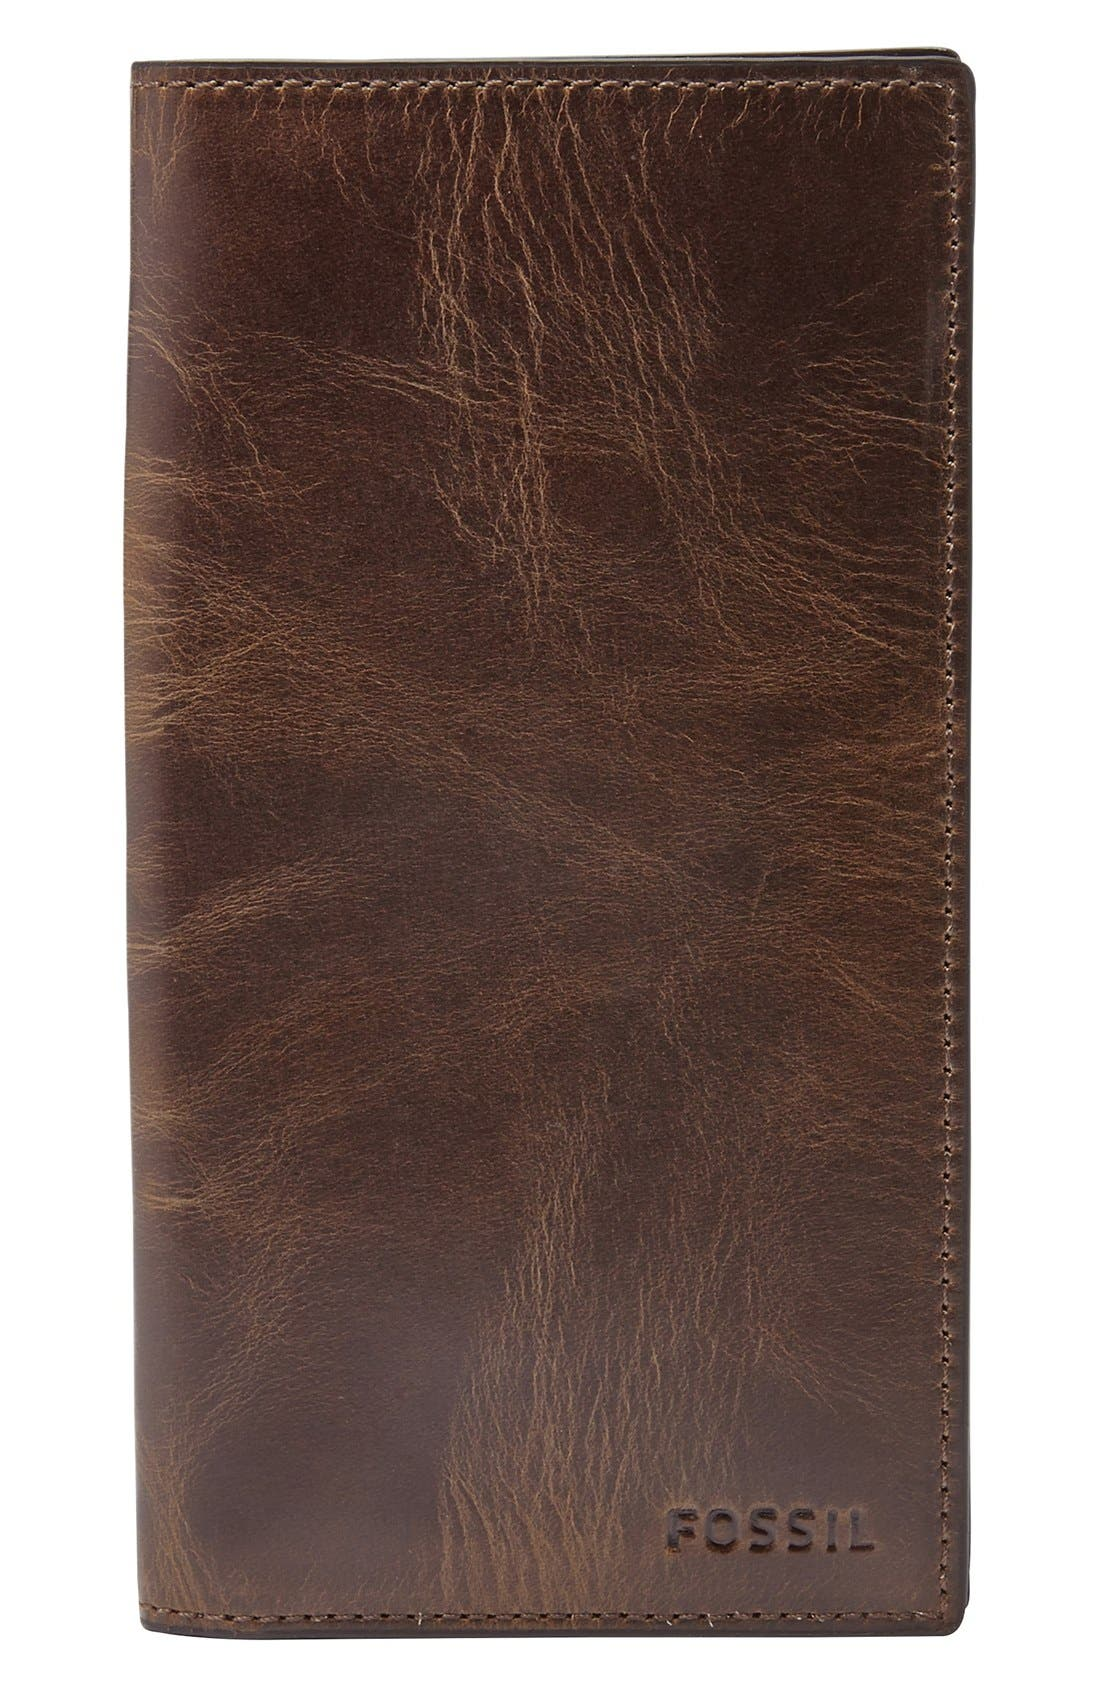 Fossil 'Derrick' Leather Executive Checkbook Wallet